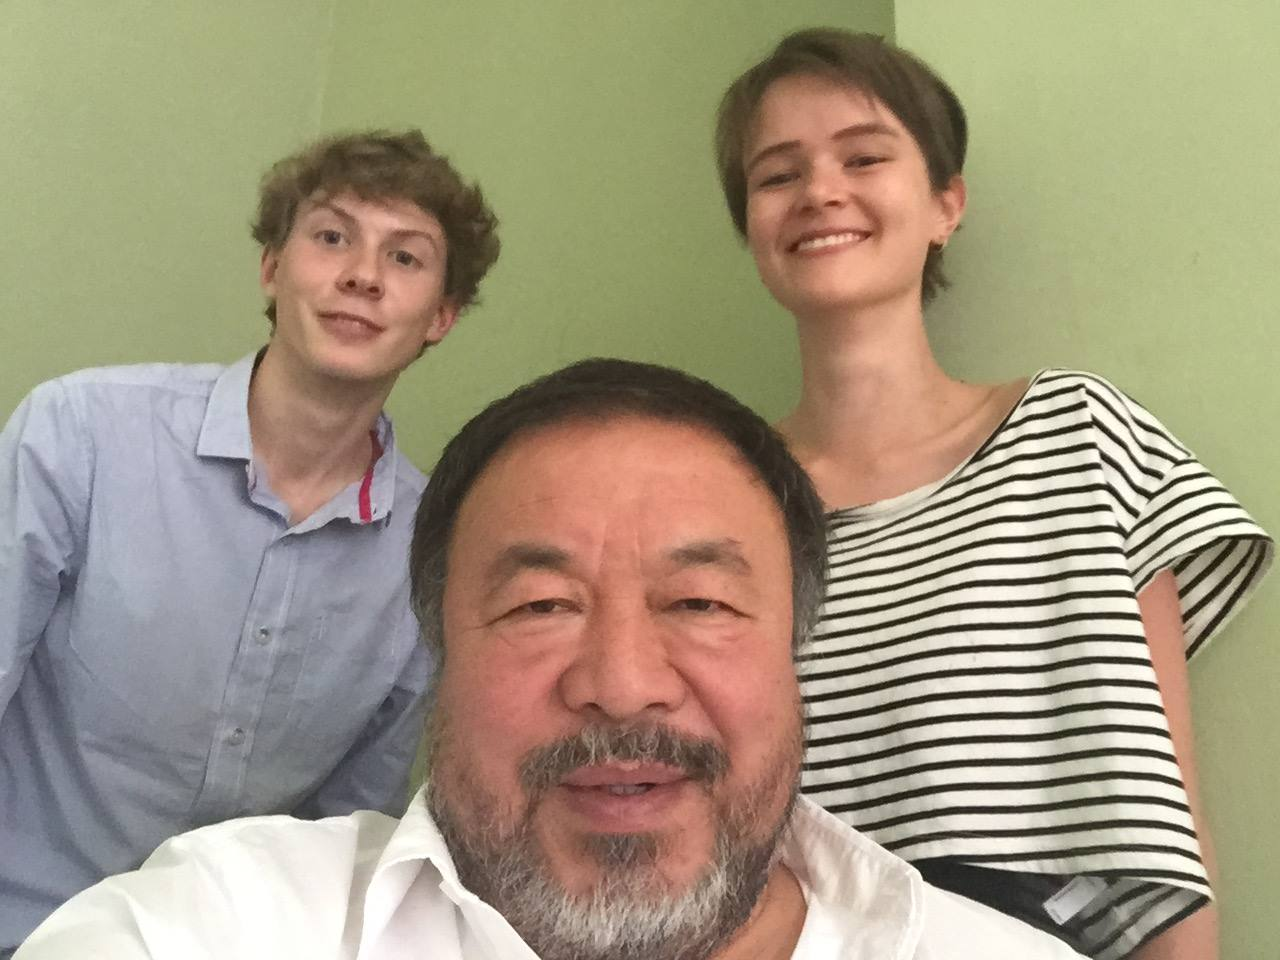 Note that Ai Weiwei also enjoys selfies - even with Tab journalists